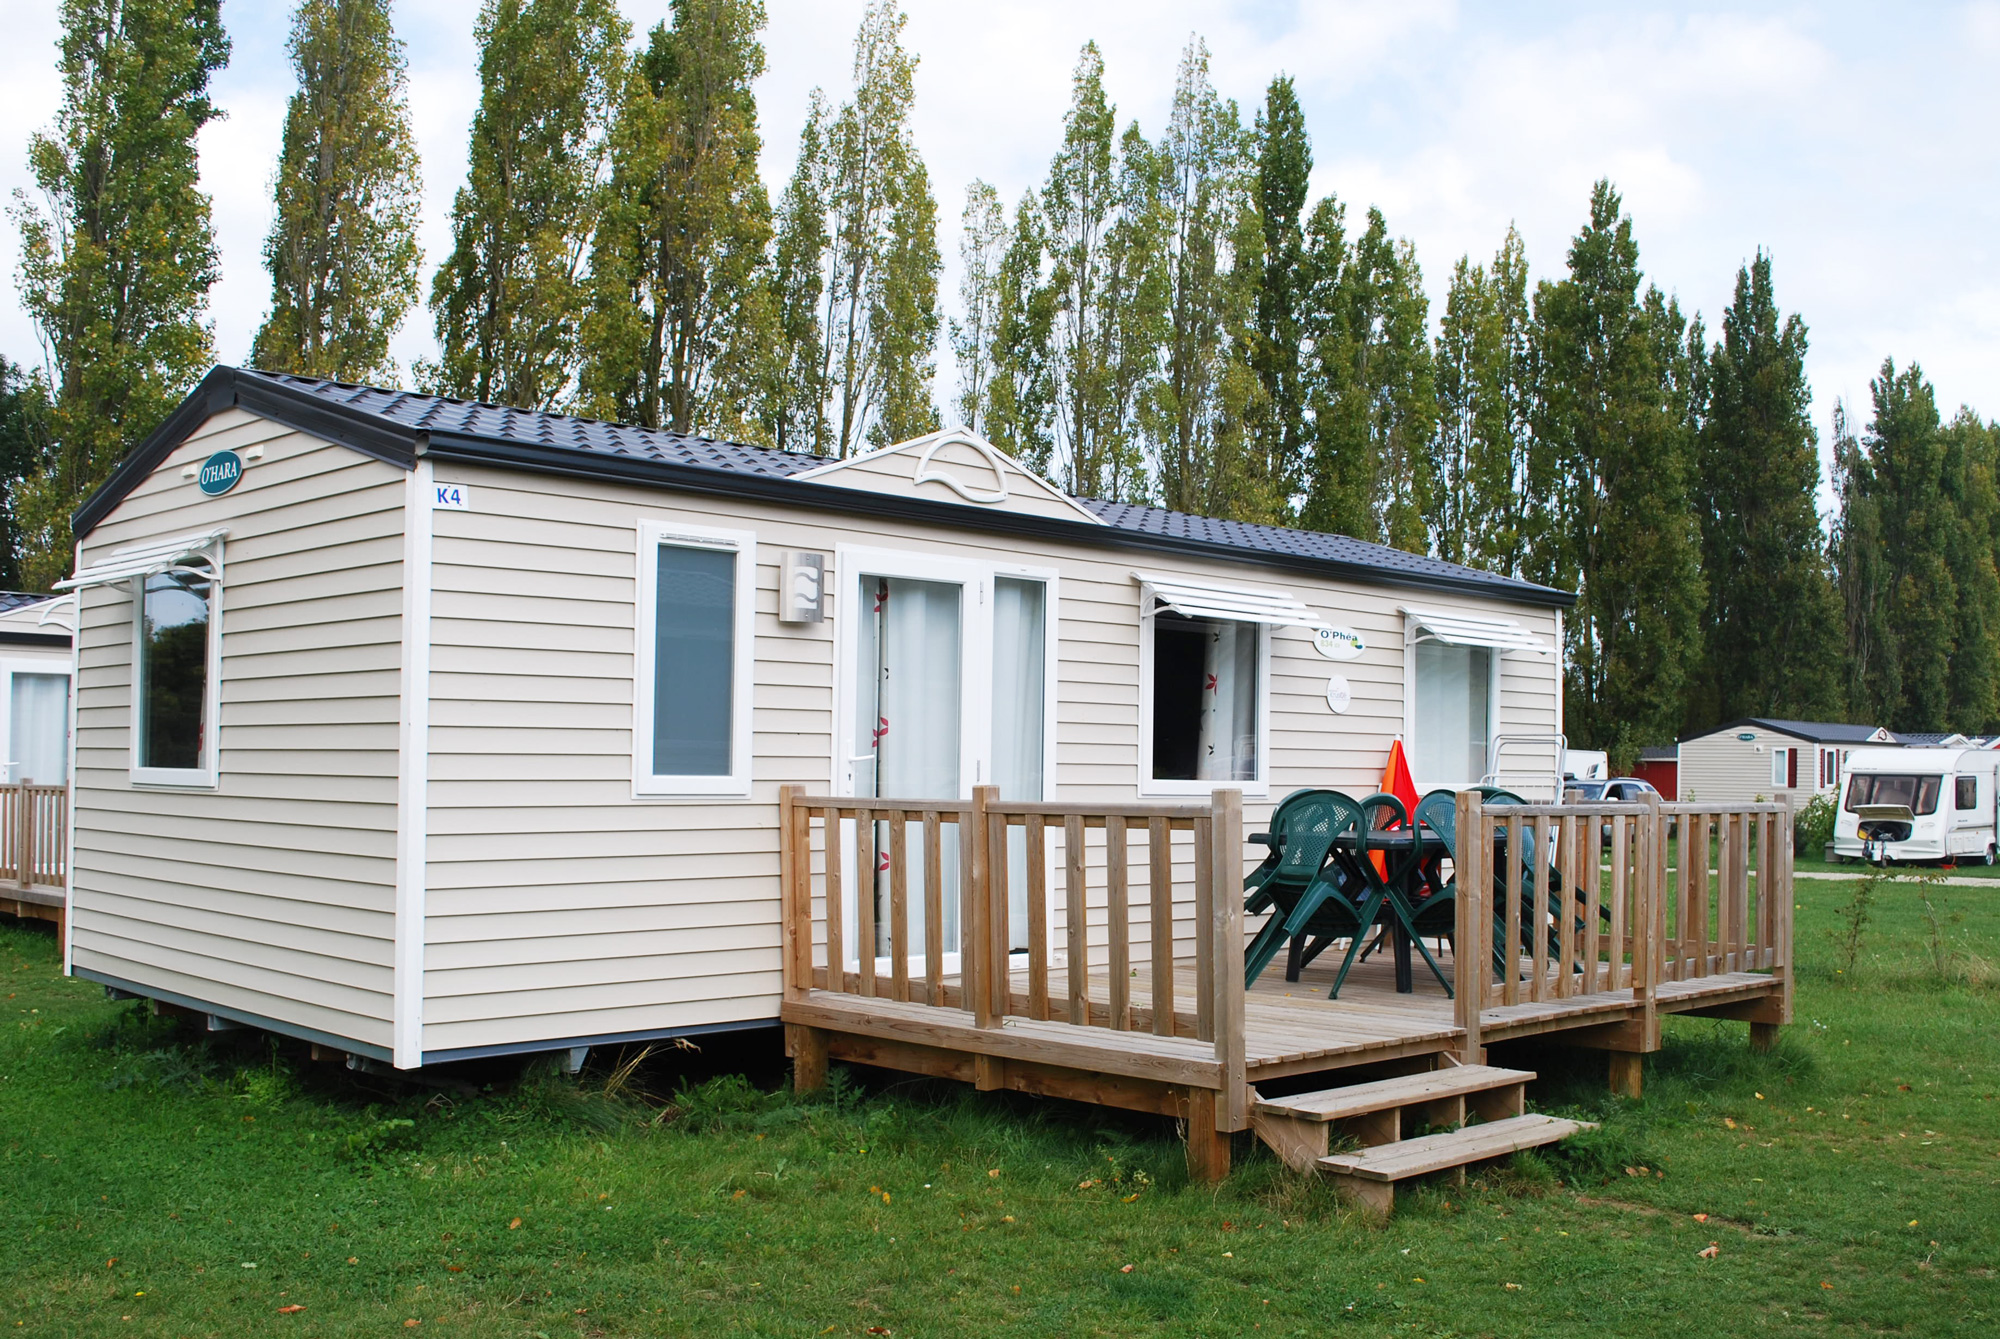 6 People Comfort Mobile Home In Brittany